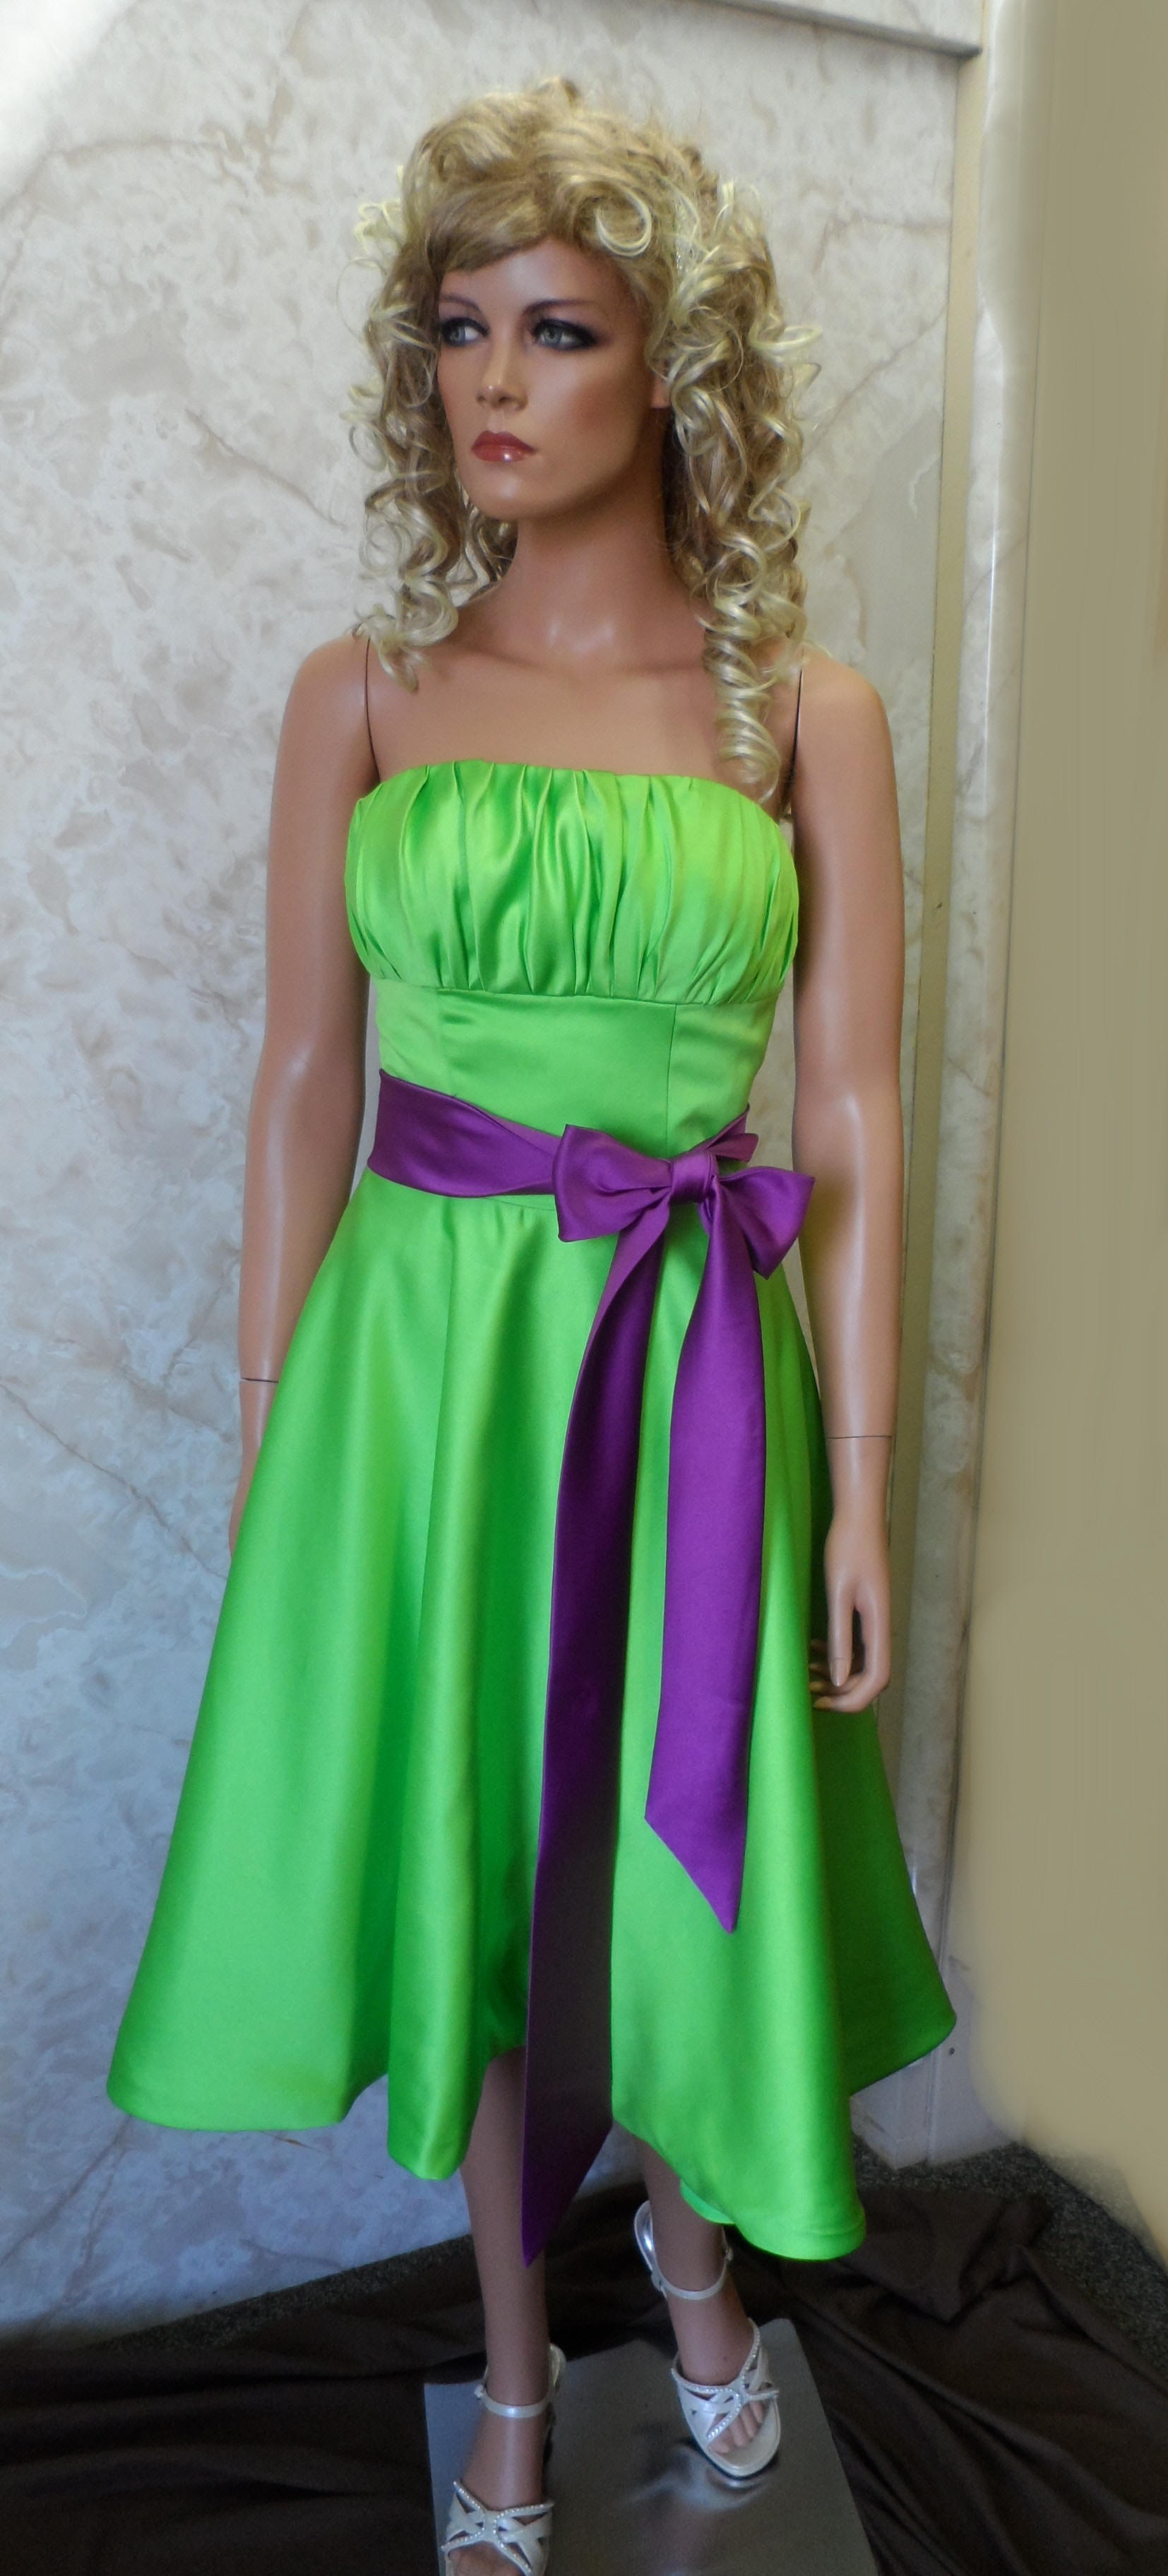 Green bridesmaid dresses short green bridesmaid dress with purple sash ombrellifo Images